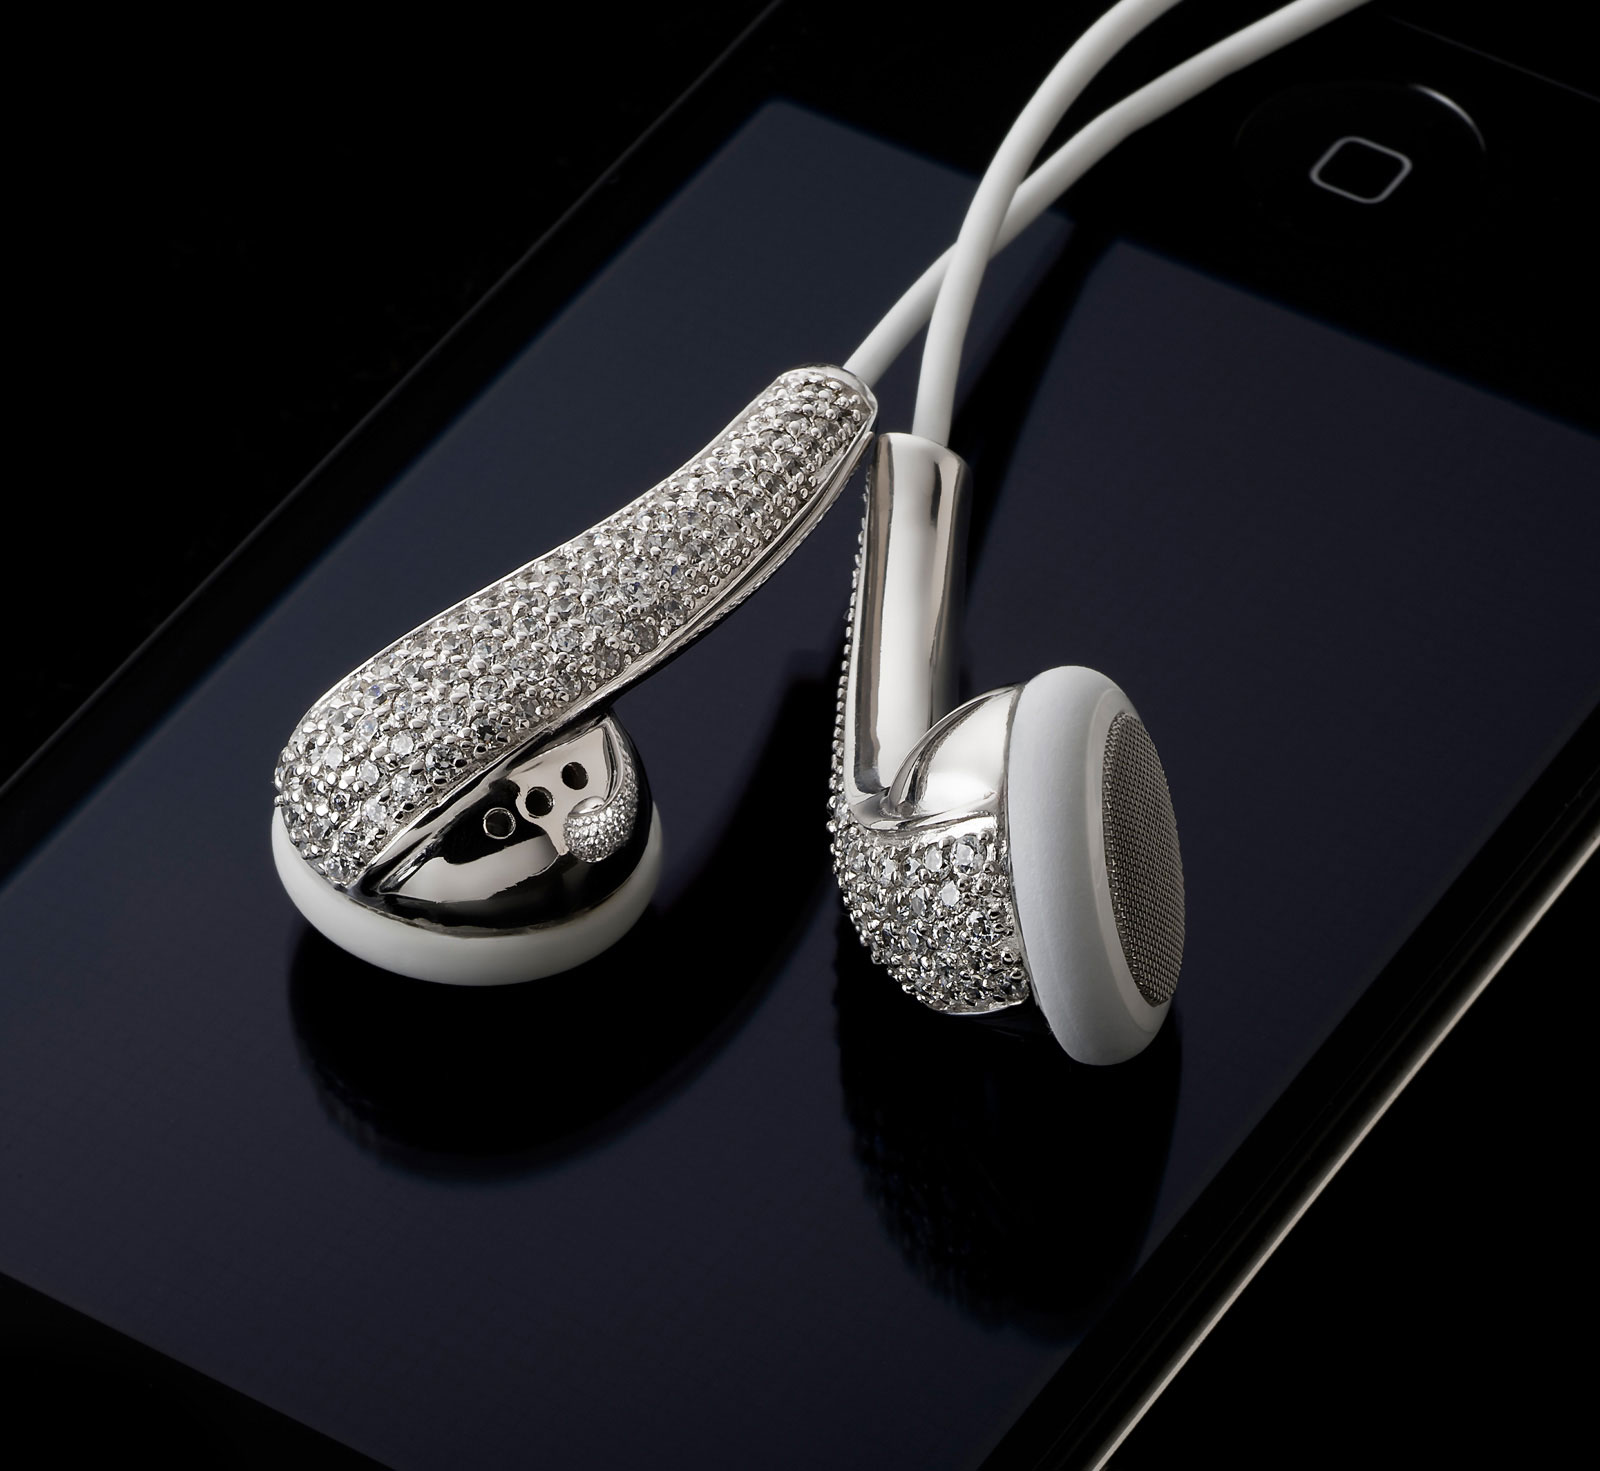 Amosu Couture Swarovski Crystal Apple Headphones